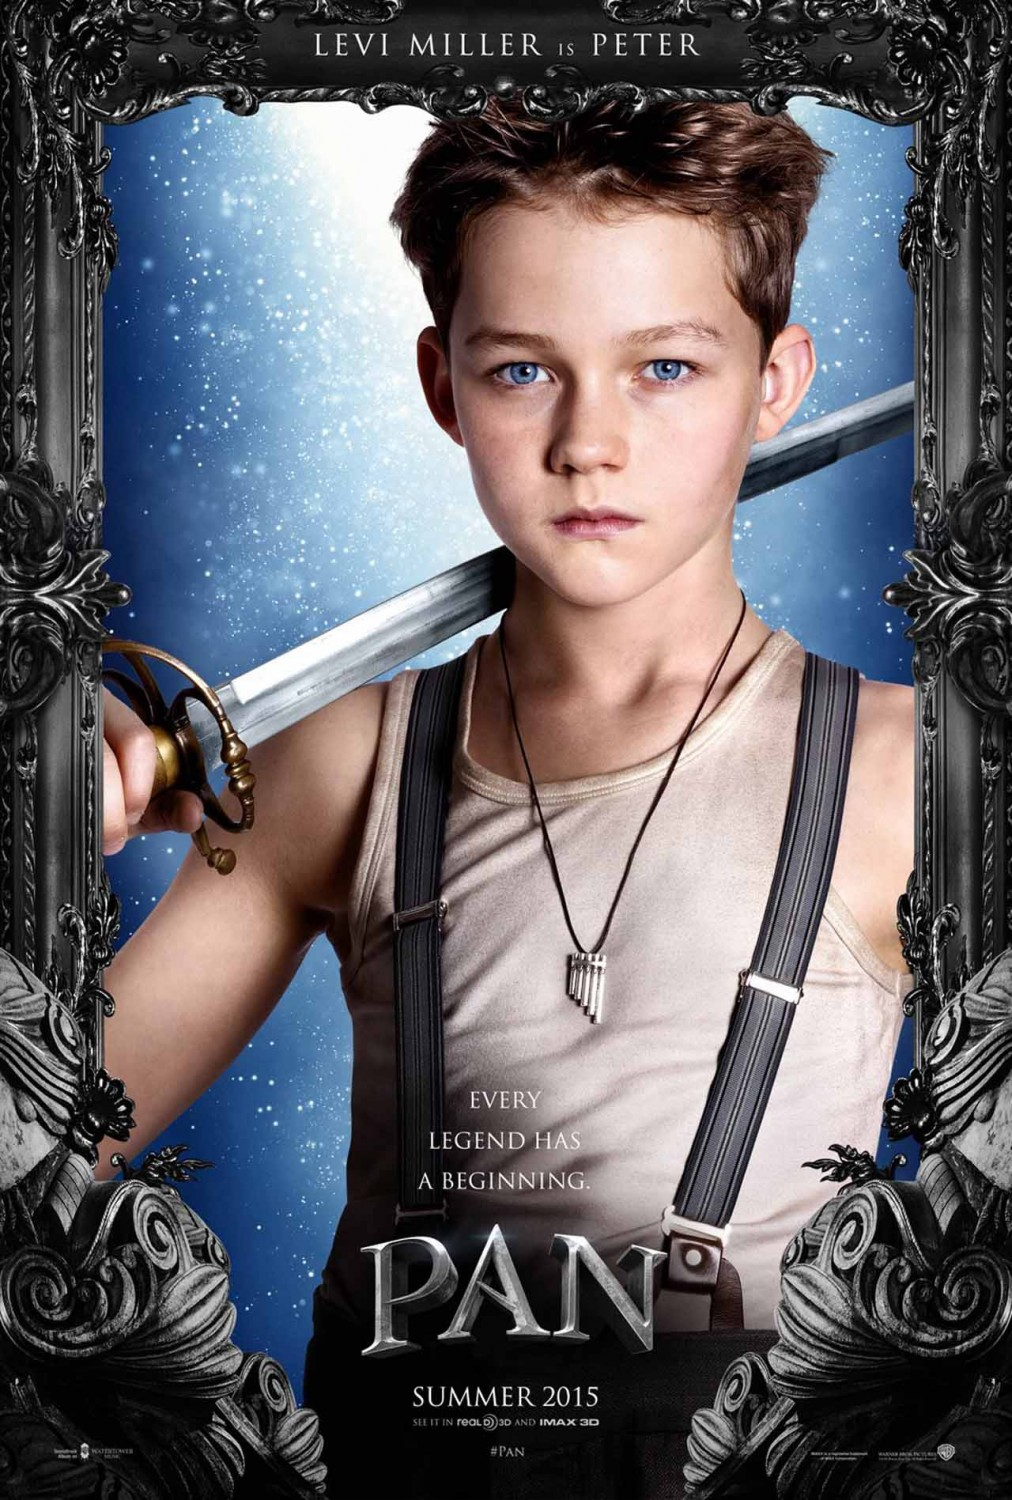 Pan-Joe_Wright-Levi_Miller-Poster